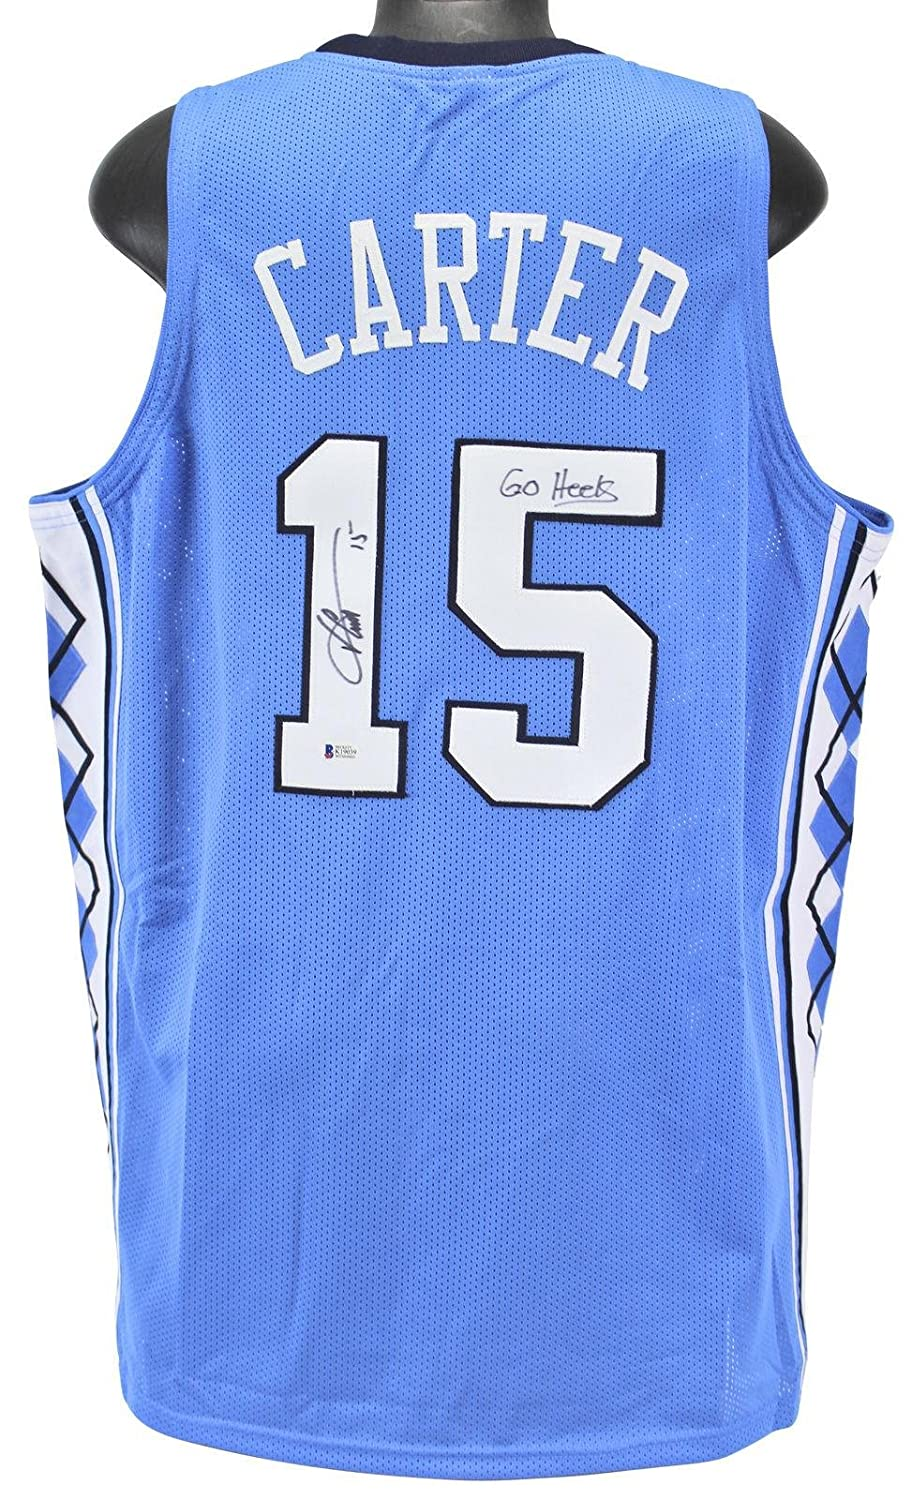 promo code 44460 45410 Vince Carter Autographed Jersey - Go Blue BAS Witnessed ...